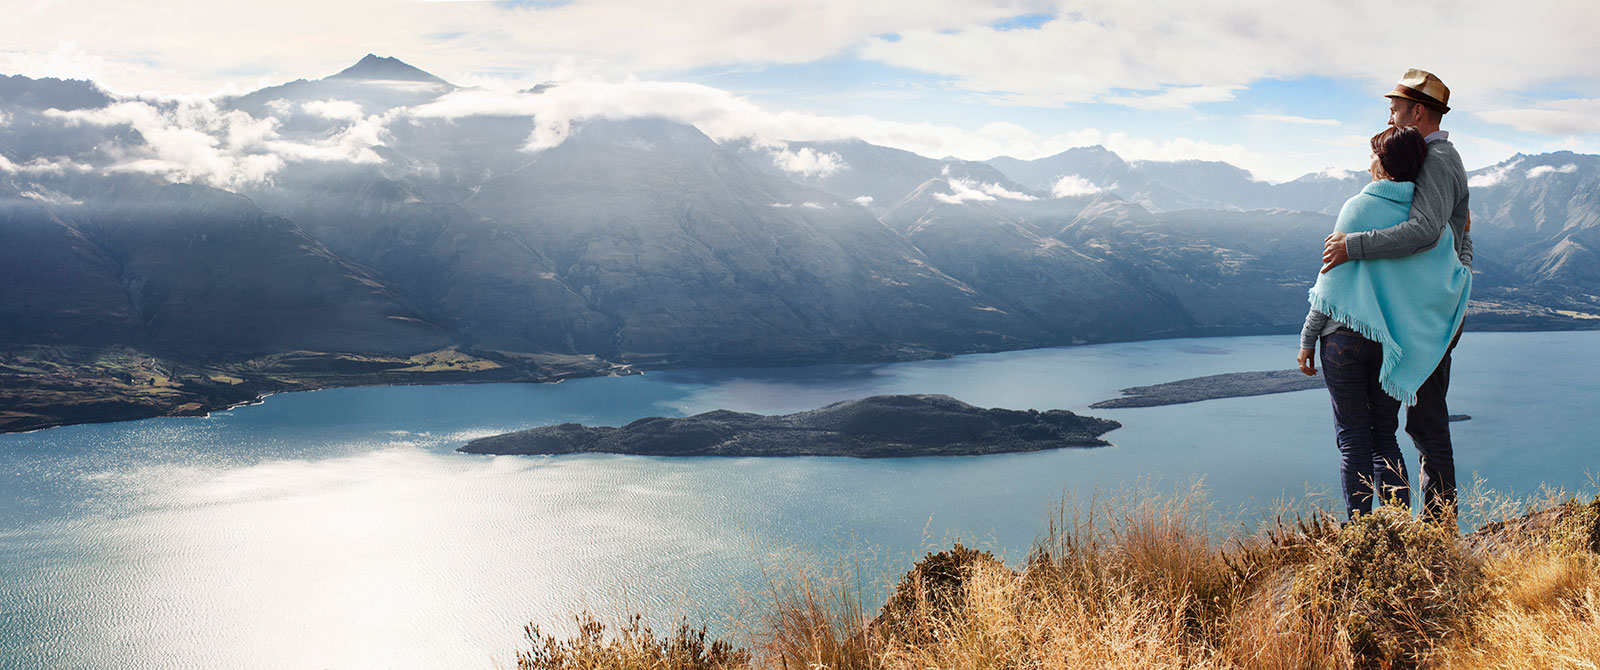 Mountain Views in Queenstown - Book Your Trip to New Zealand - New Zealand Travel Agency